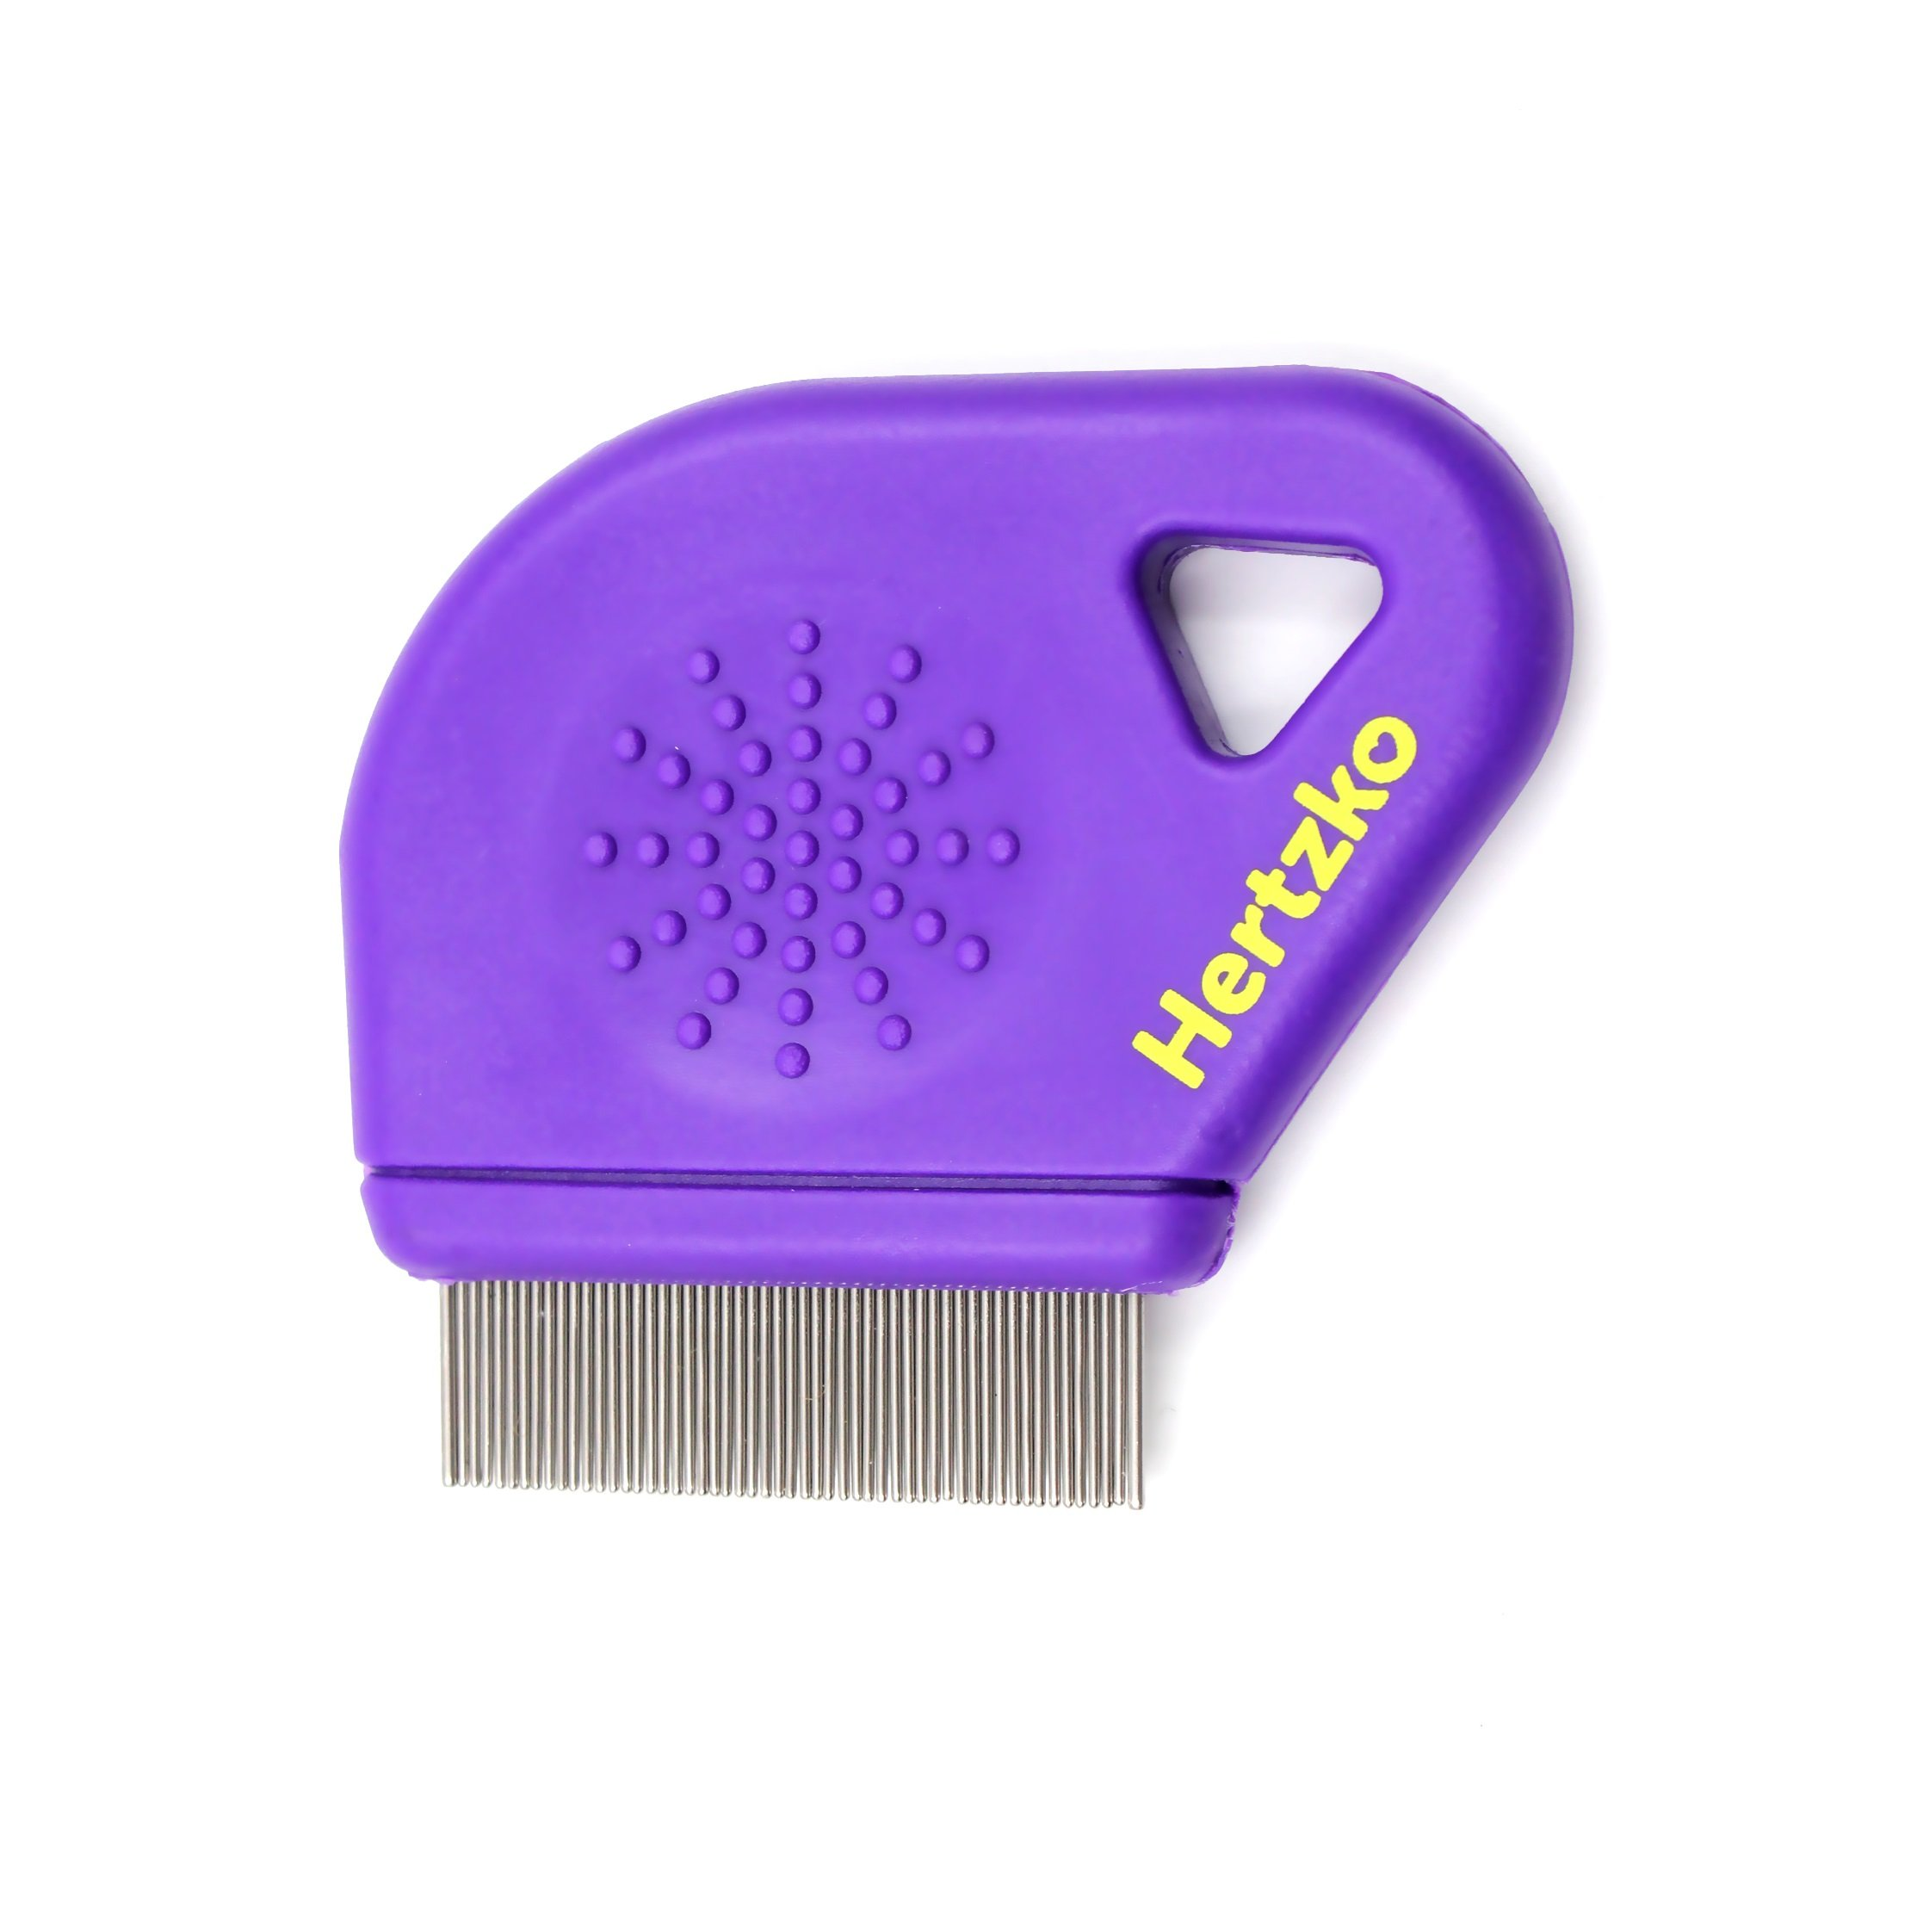 Hertzko Flea Comb By Closely Spaced Metal Pins Removes Fleas, Flea Eggs, And Debris From Your Pet's Coat - 10mm Metal Teeth Are Great For Short Hair Areas - Suitable For Dogs And Cats!